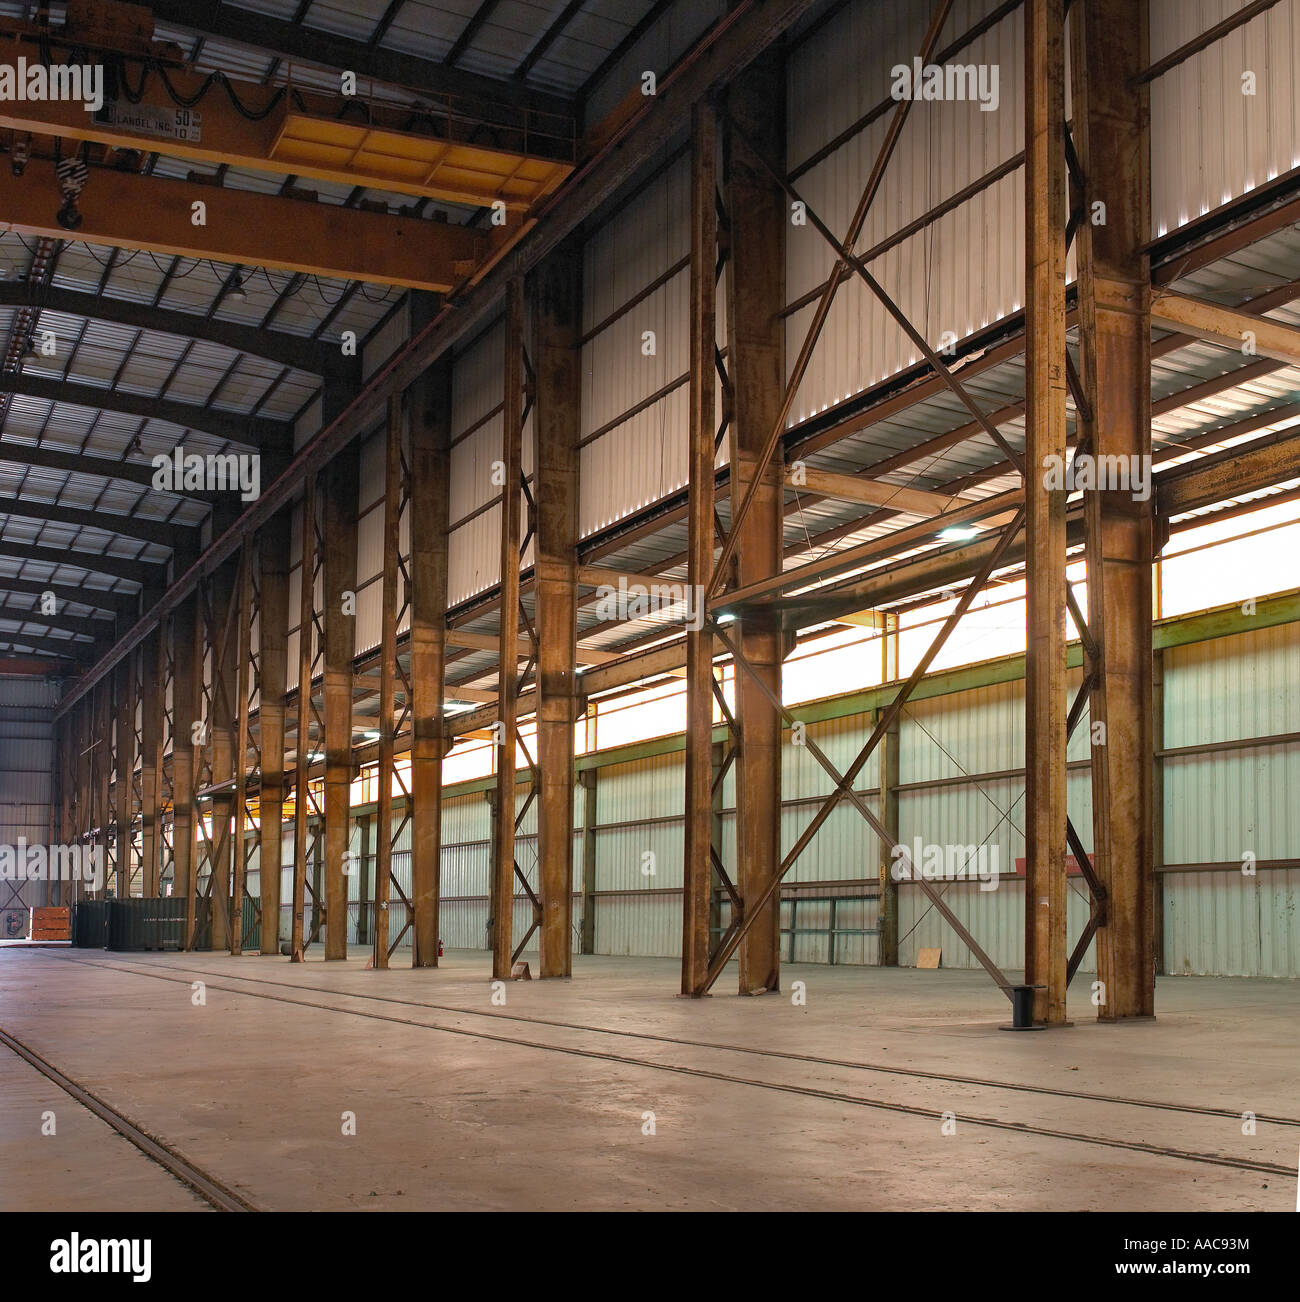 Rusty Beams Girders Inside Old Empty Warehouse, USA Stock